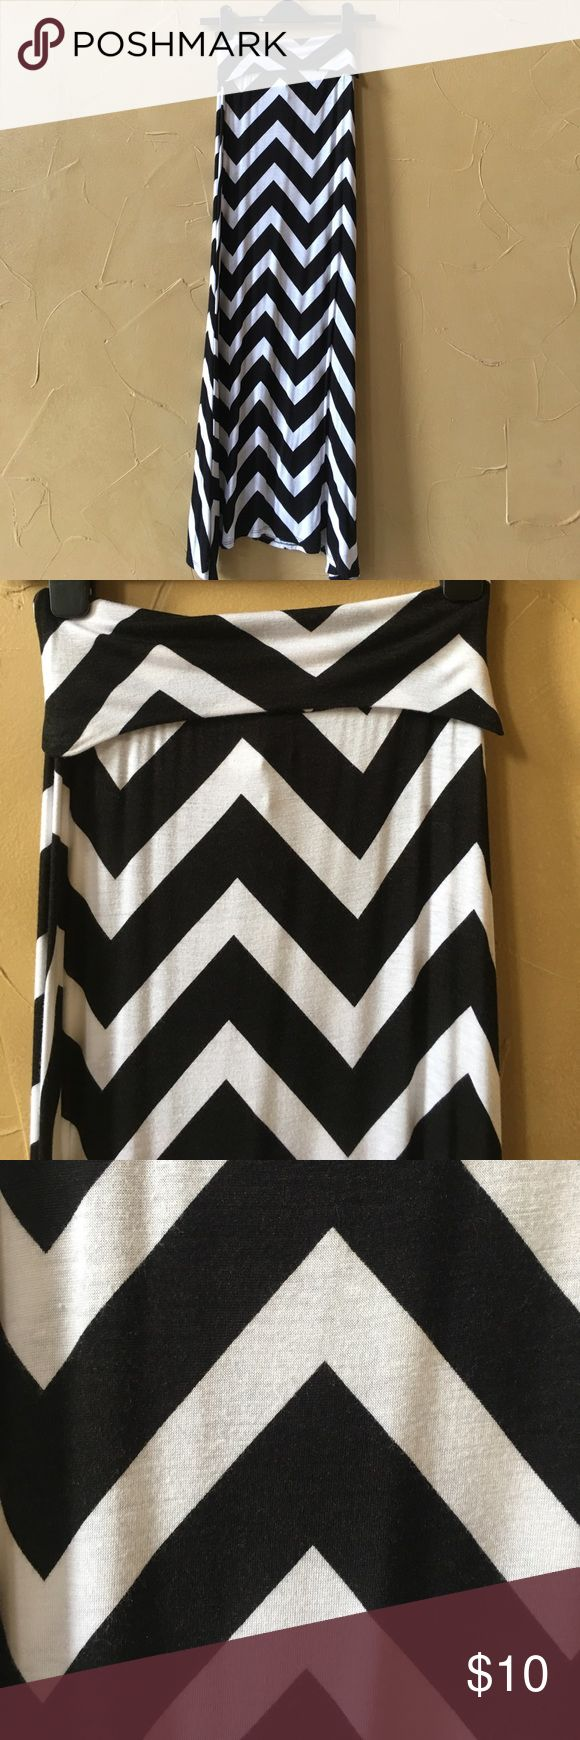 Black and white chevron maxi skirt Black and white fold over waist band chevron black-and-white  Maxi worn 2 times skirt B Envied Skirts Maxi